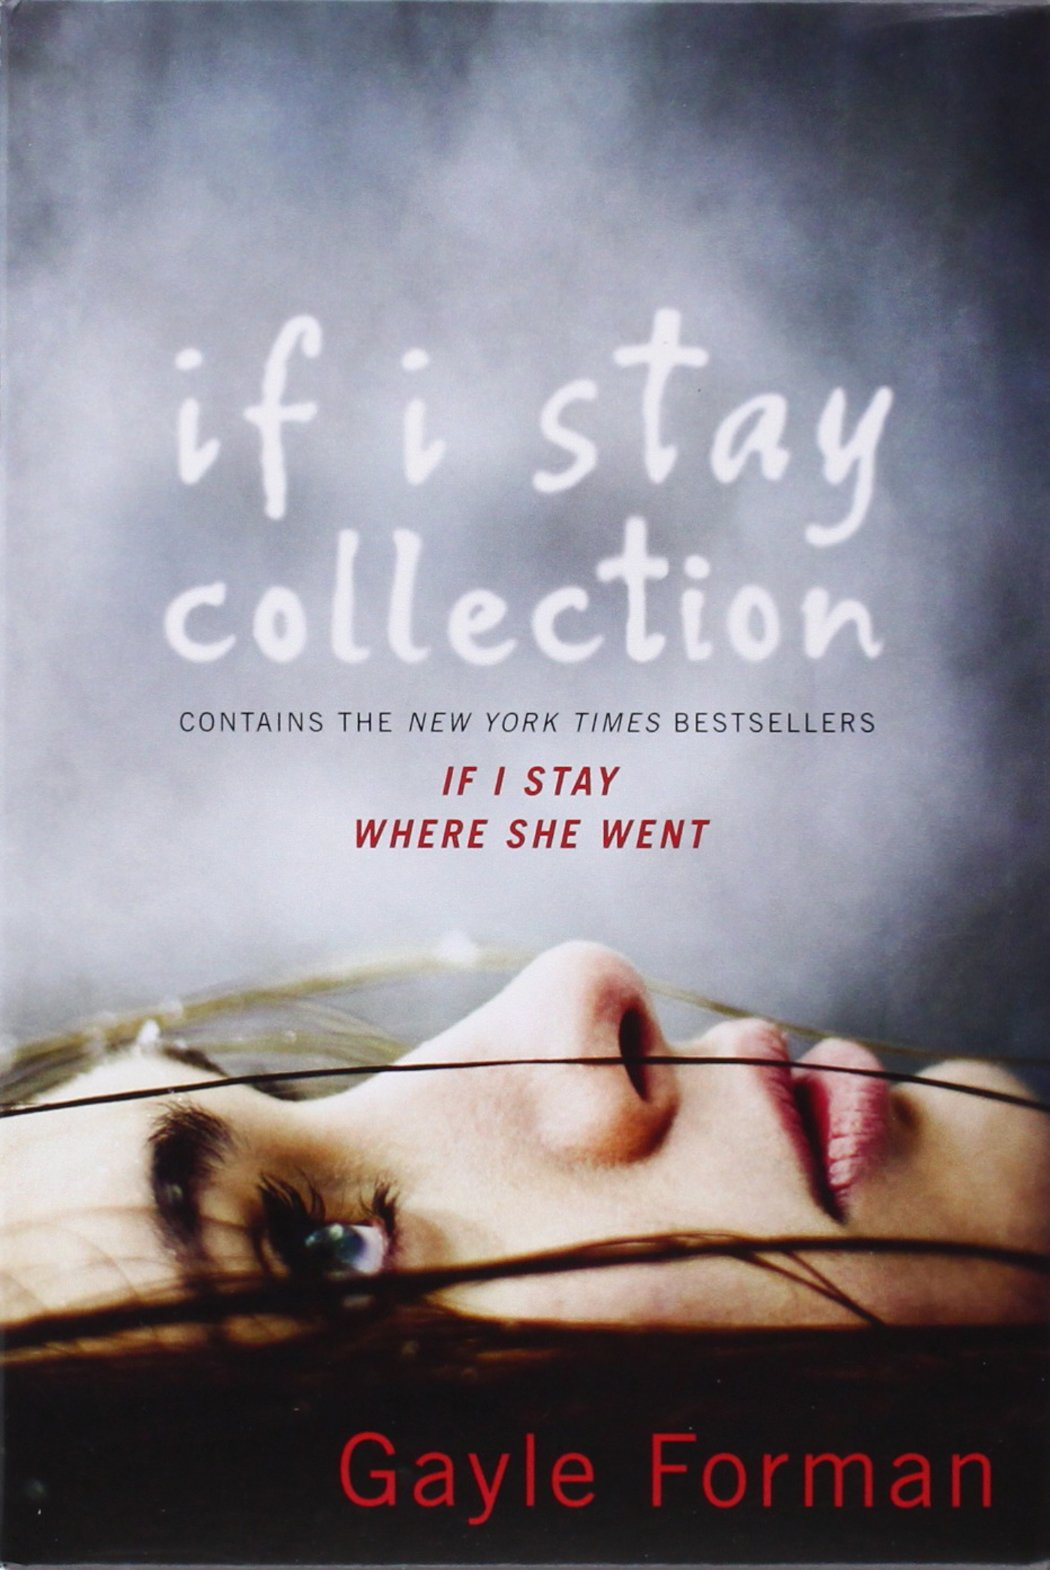 If Stay Collection Gayle Forman product image